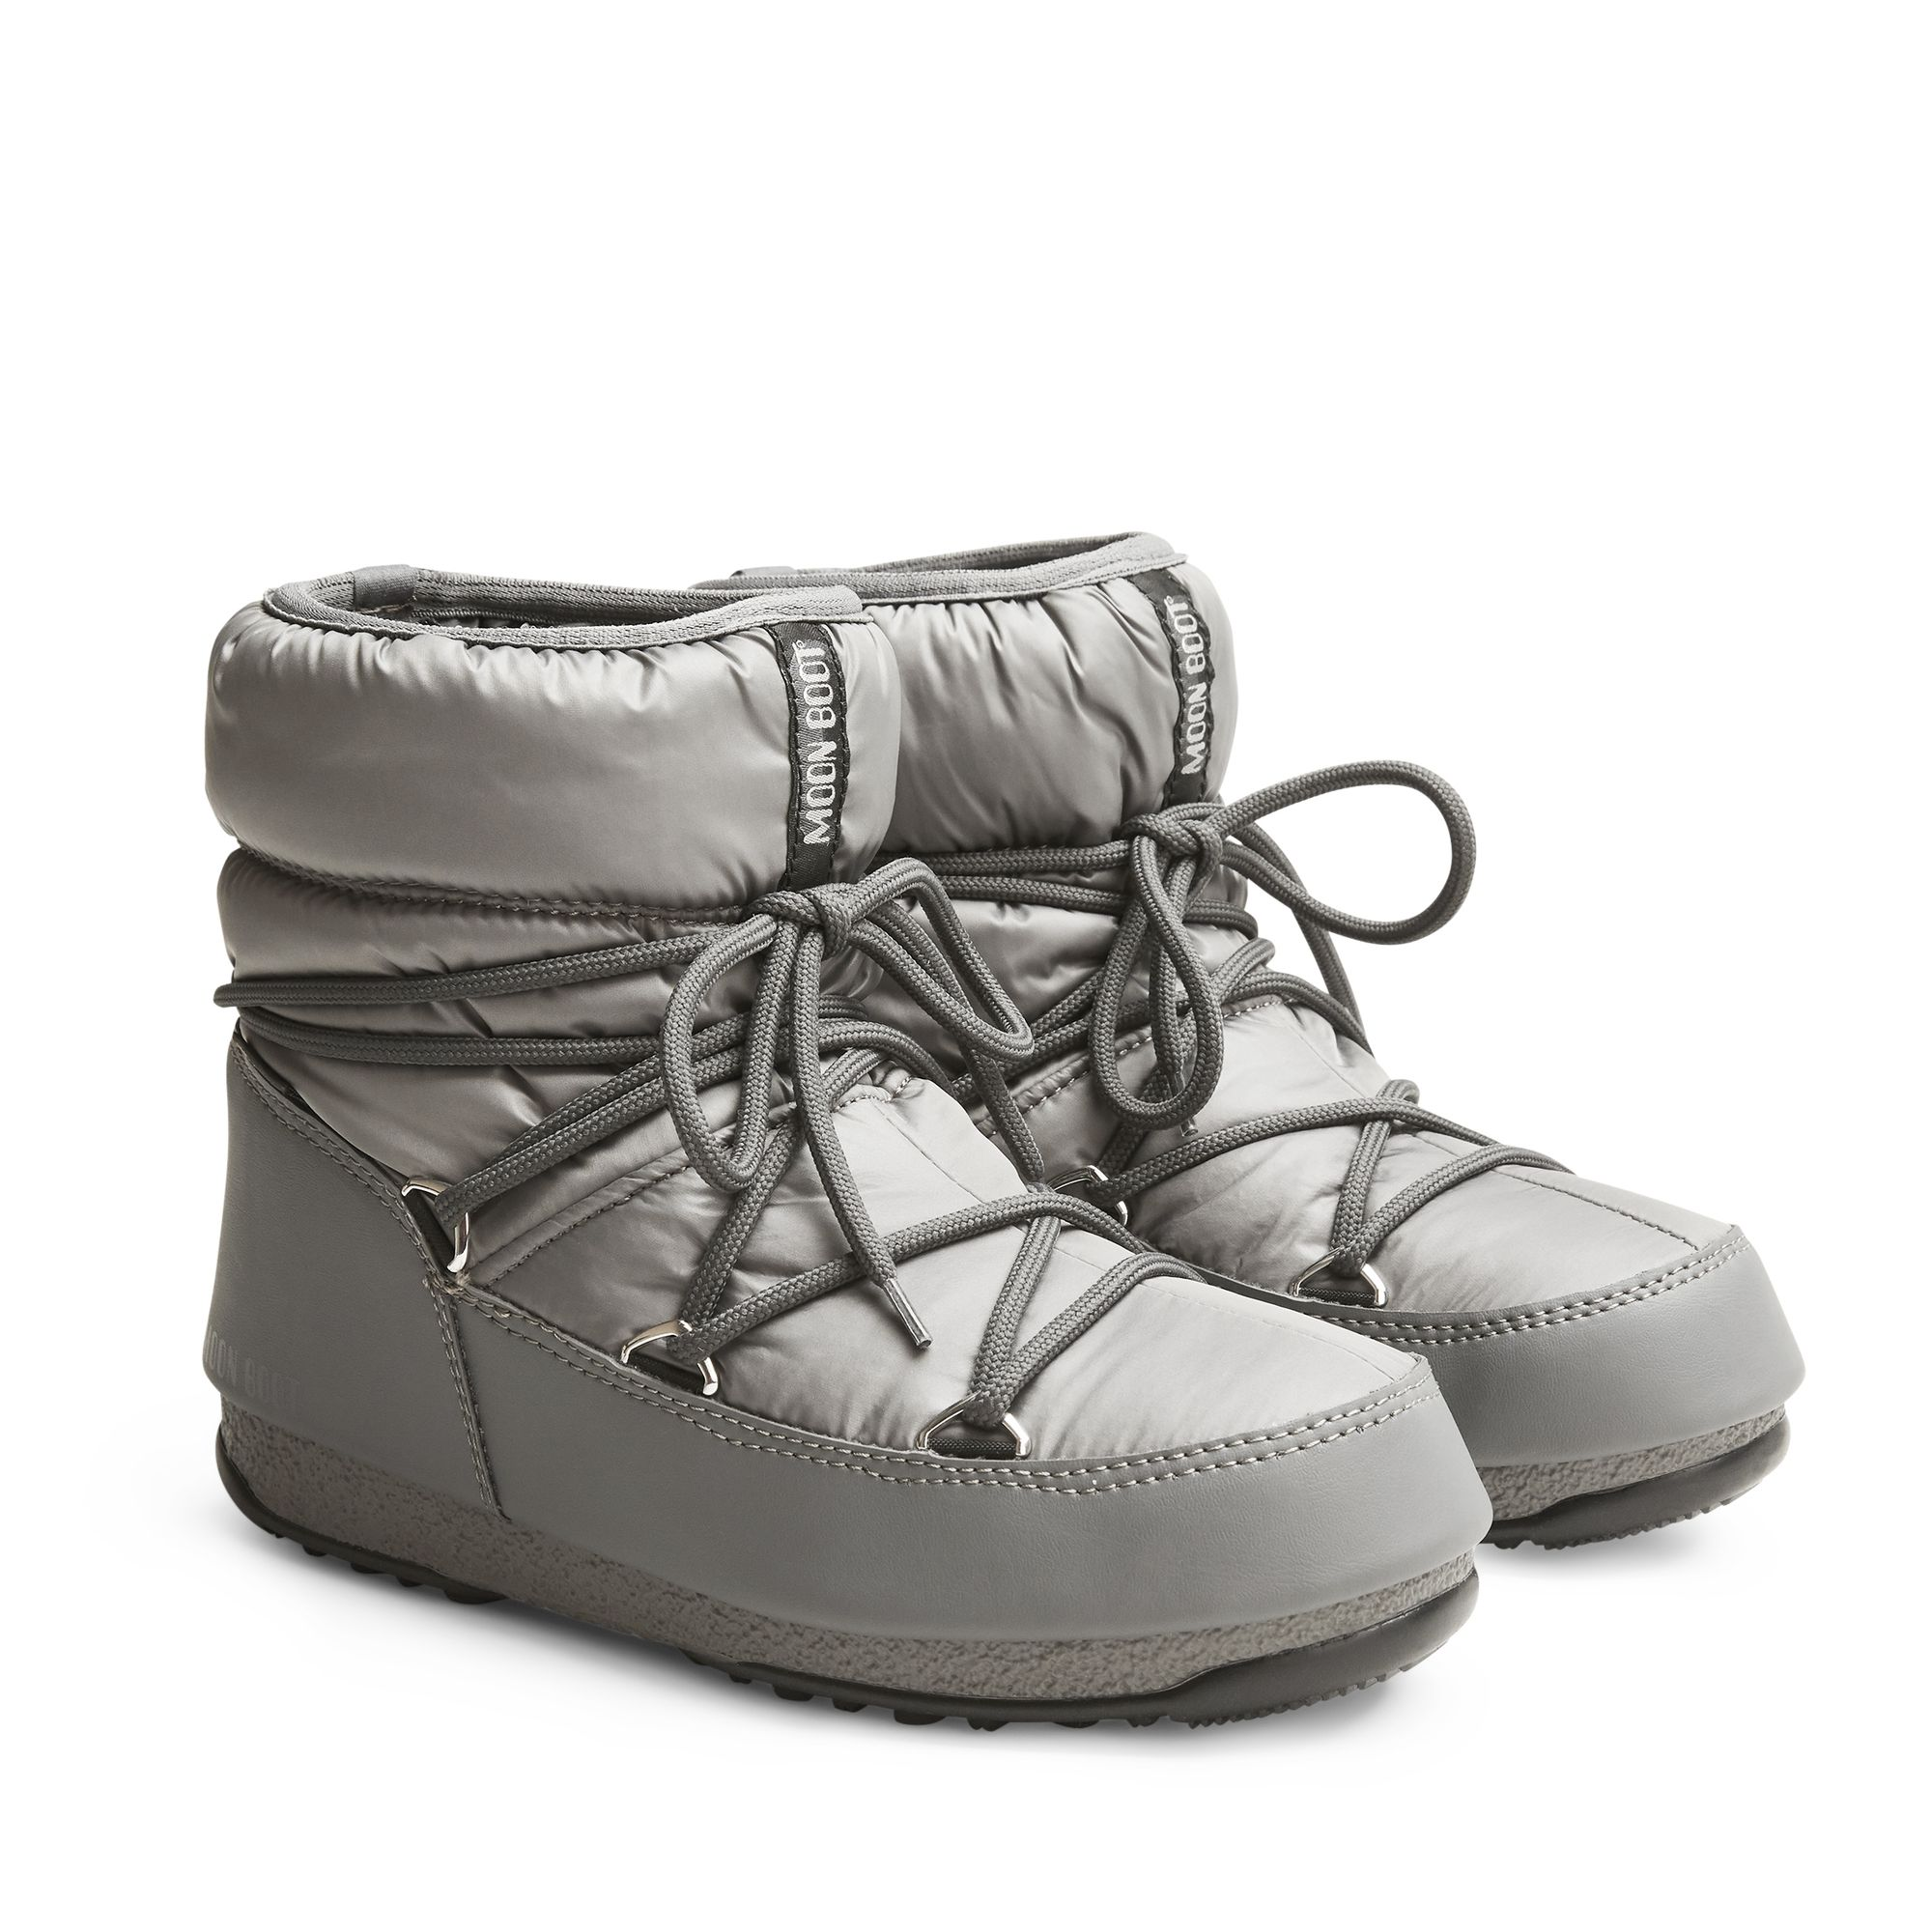 Moon Boot Low Nylon WP 2 vinterboots, Grå, 36